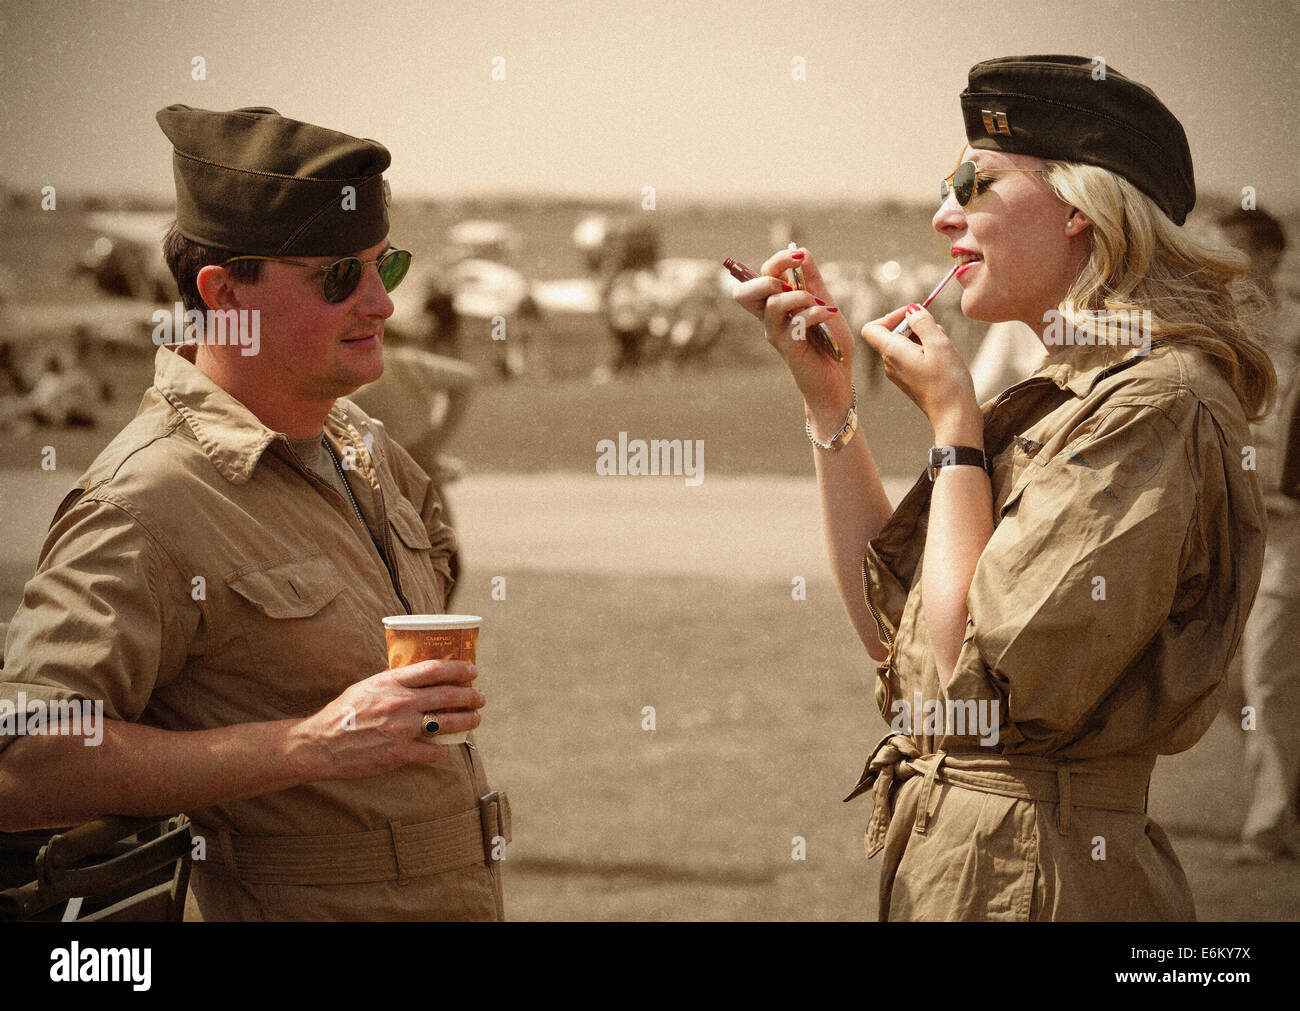 A brief acquaintance as girl is applying her lipstick as the soldier looks on. - Stock Image